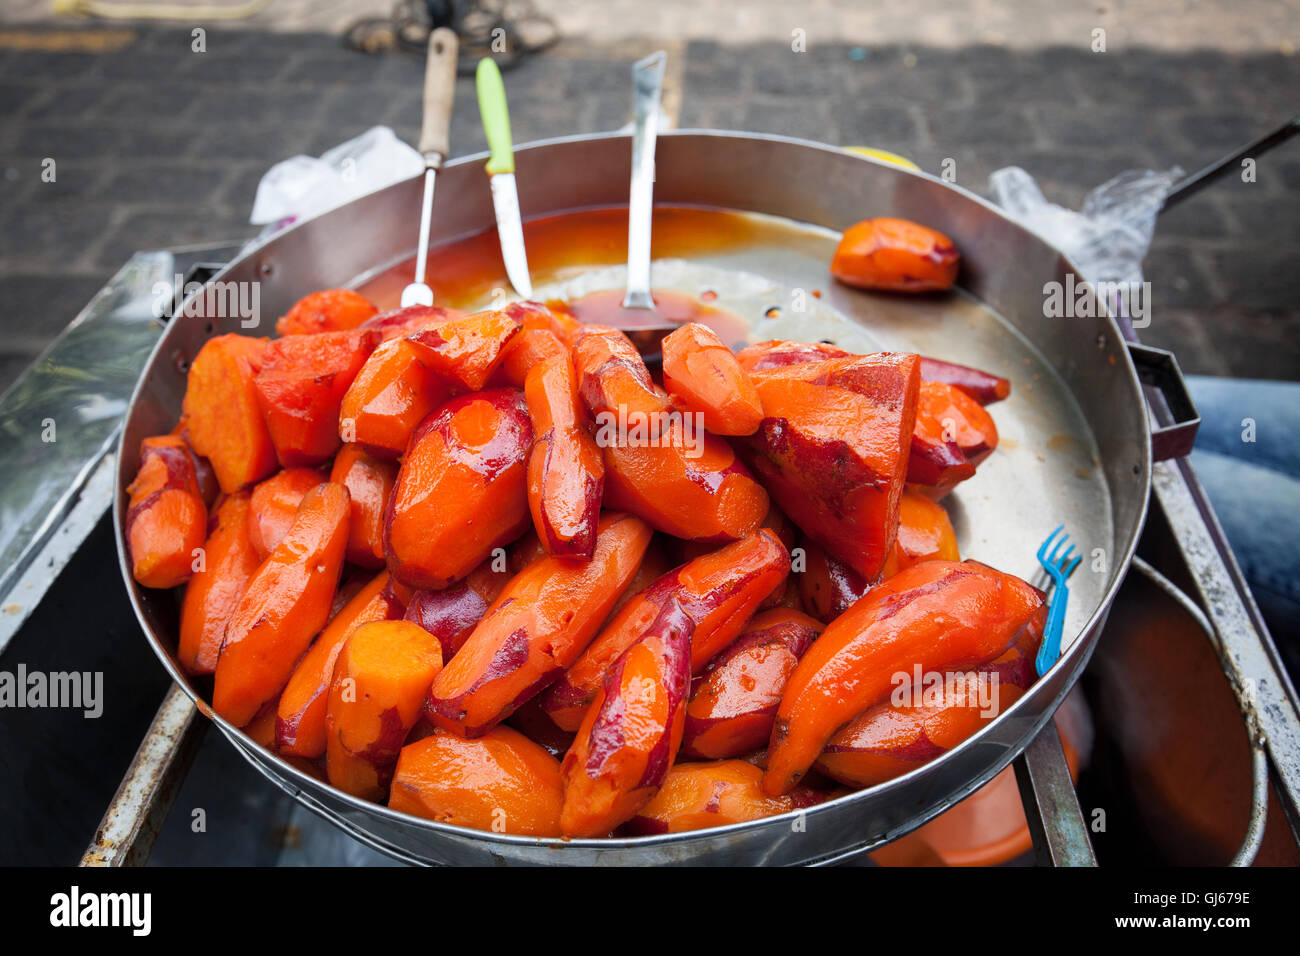 Sweet potatoes for sale near the Plaza Grande in Patzcuaro, Michoacan, Mexico. - Stock Image